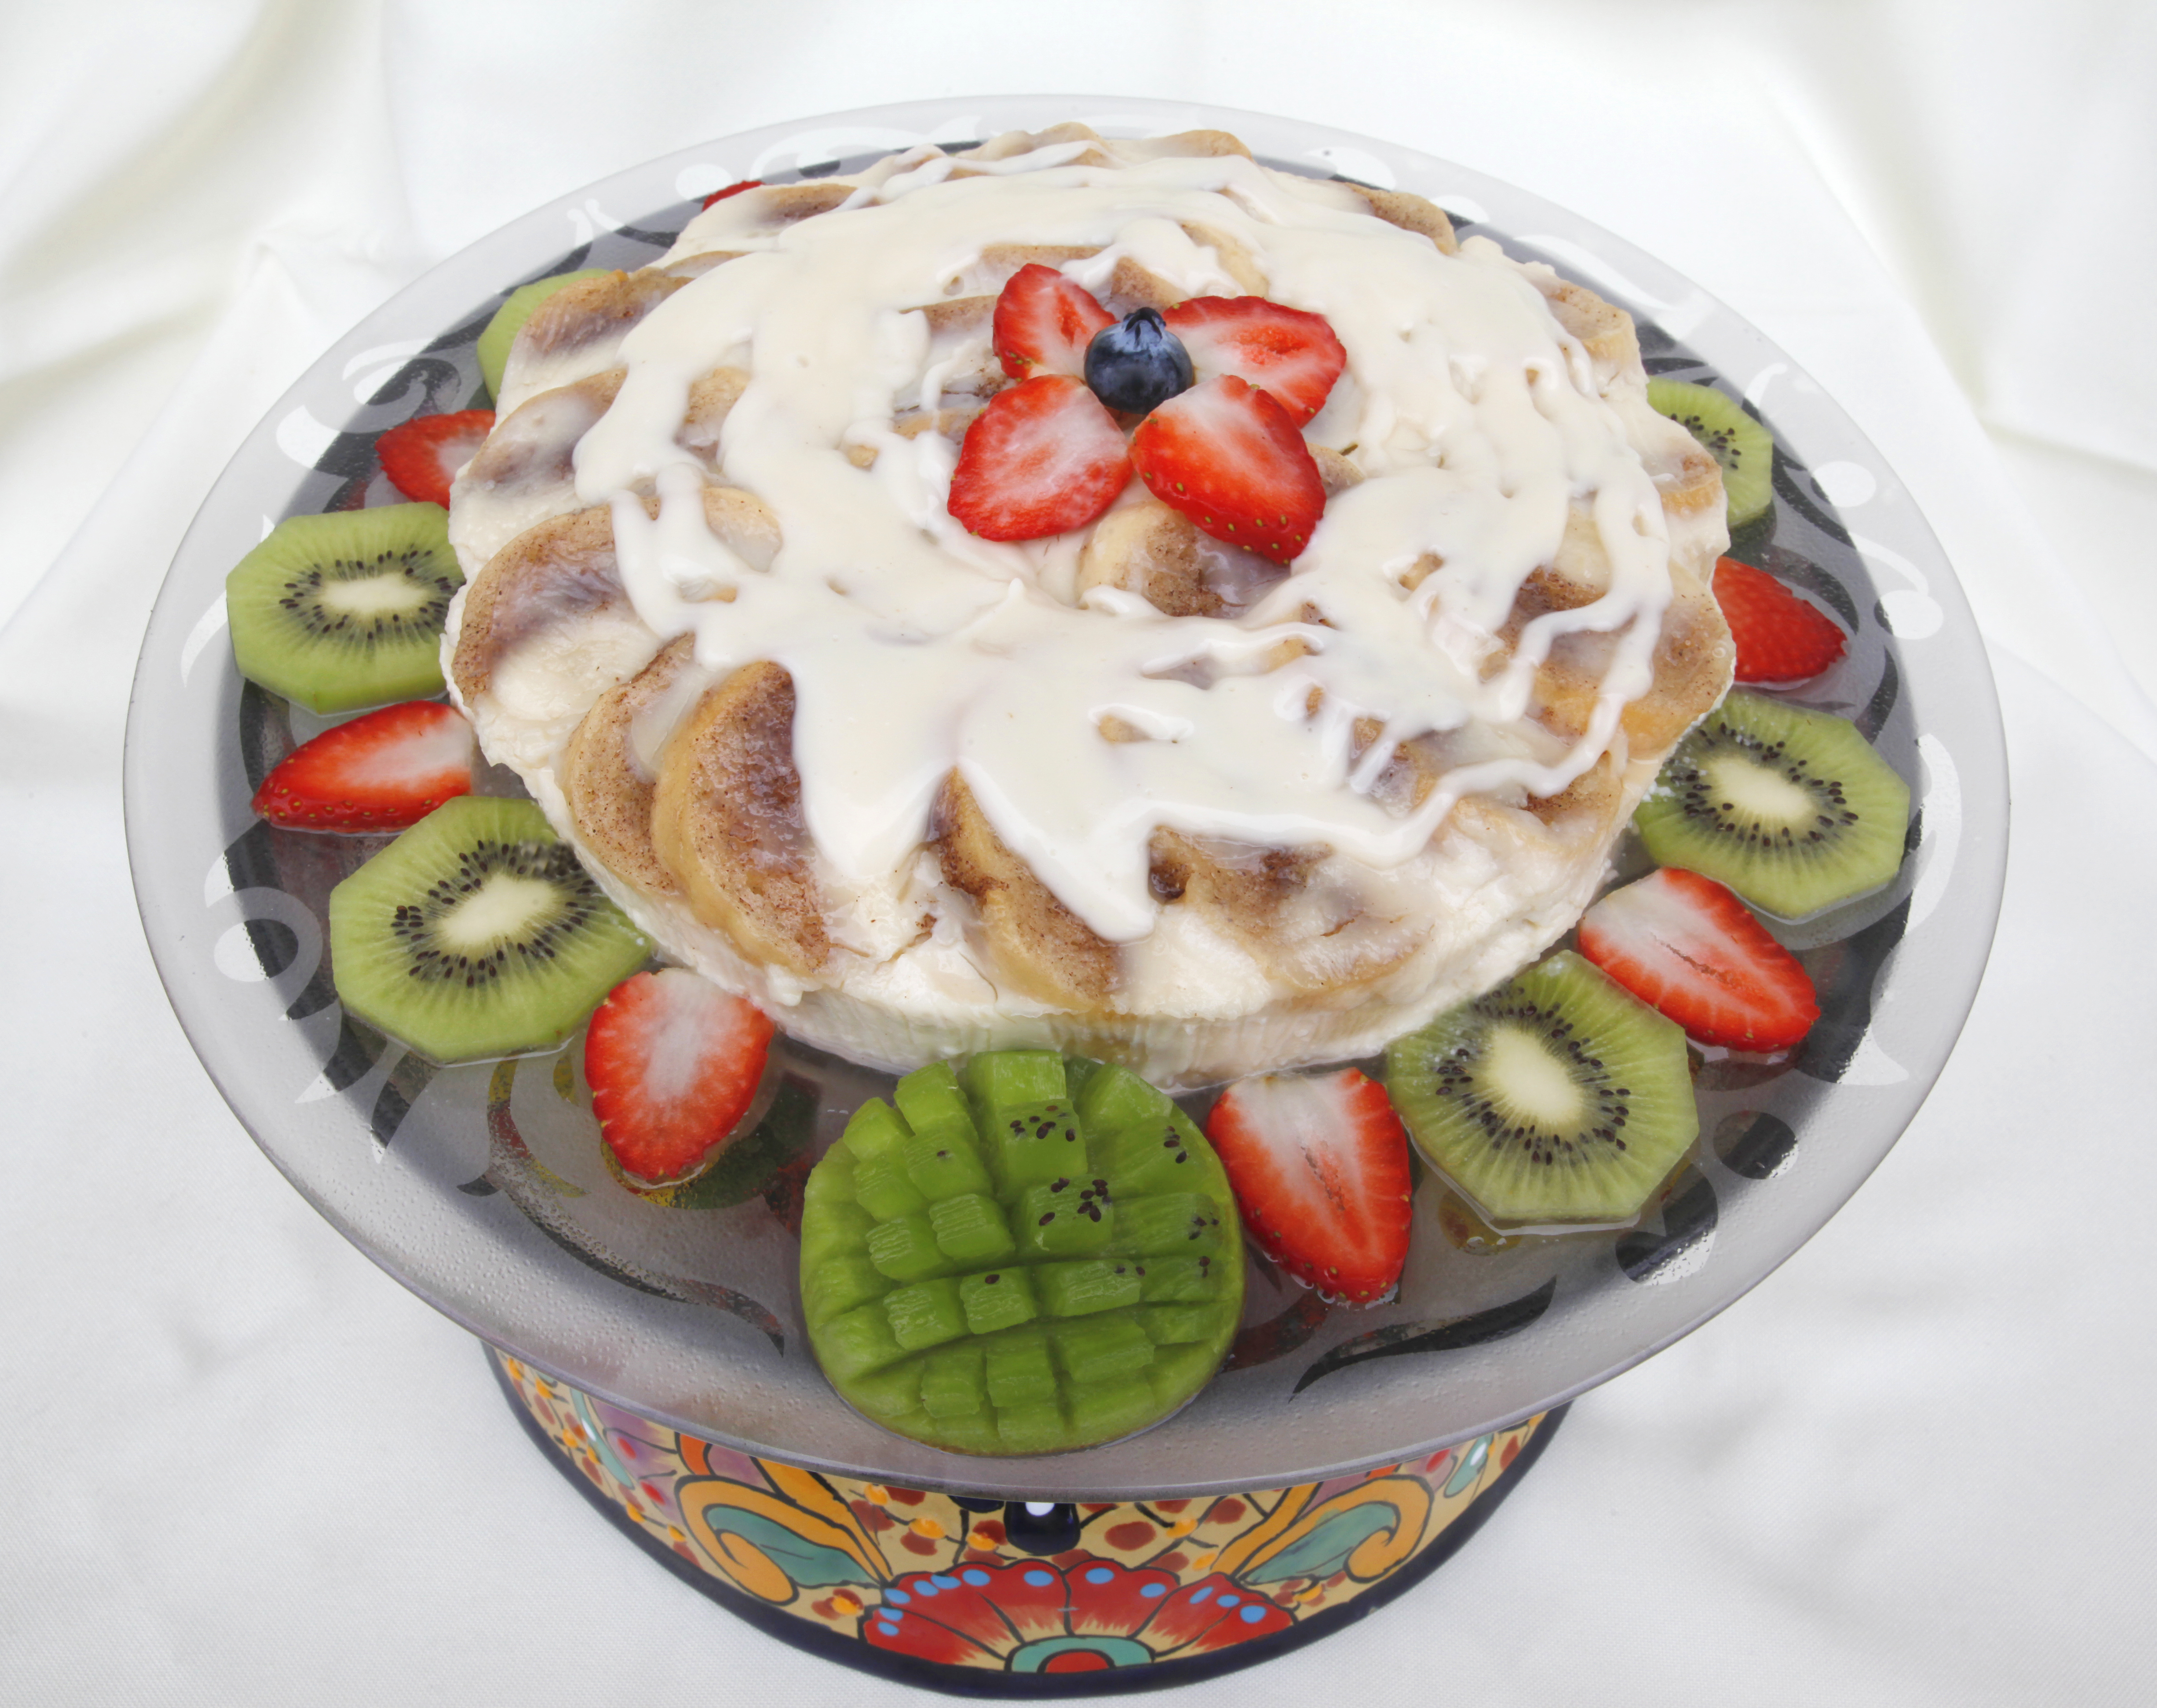 SAW N-D 201`5 - Entertaining - Rosemary Kowalski - Bread Pudding 1